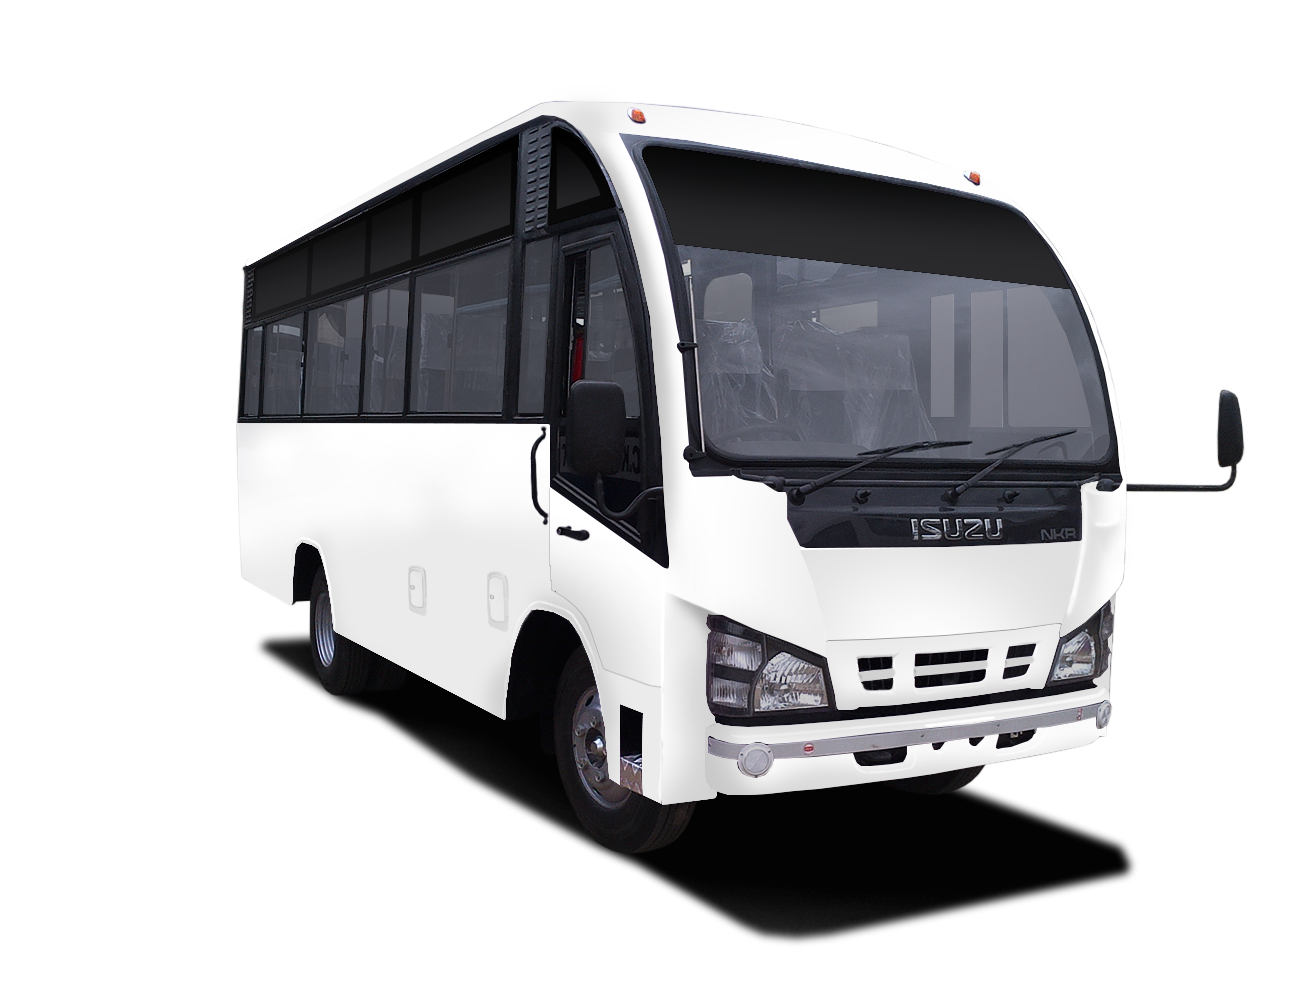 Mini bus png. Hire vehicle in nepal